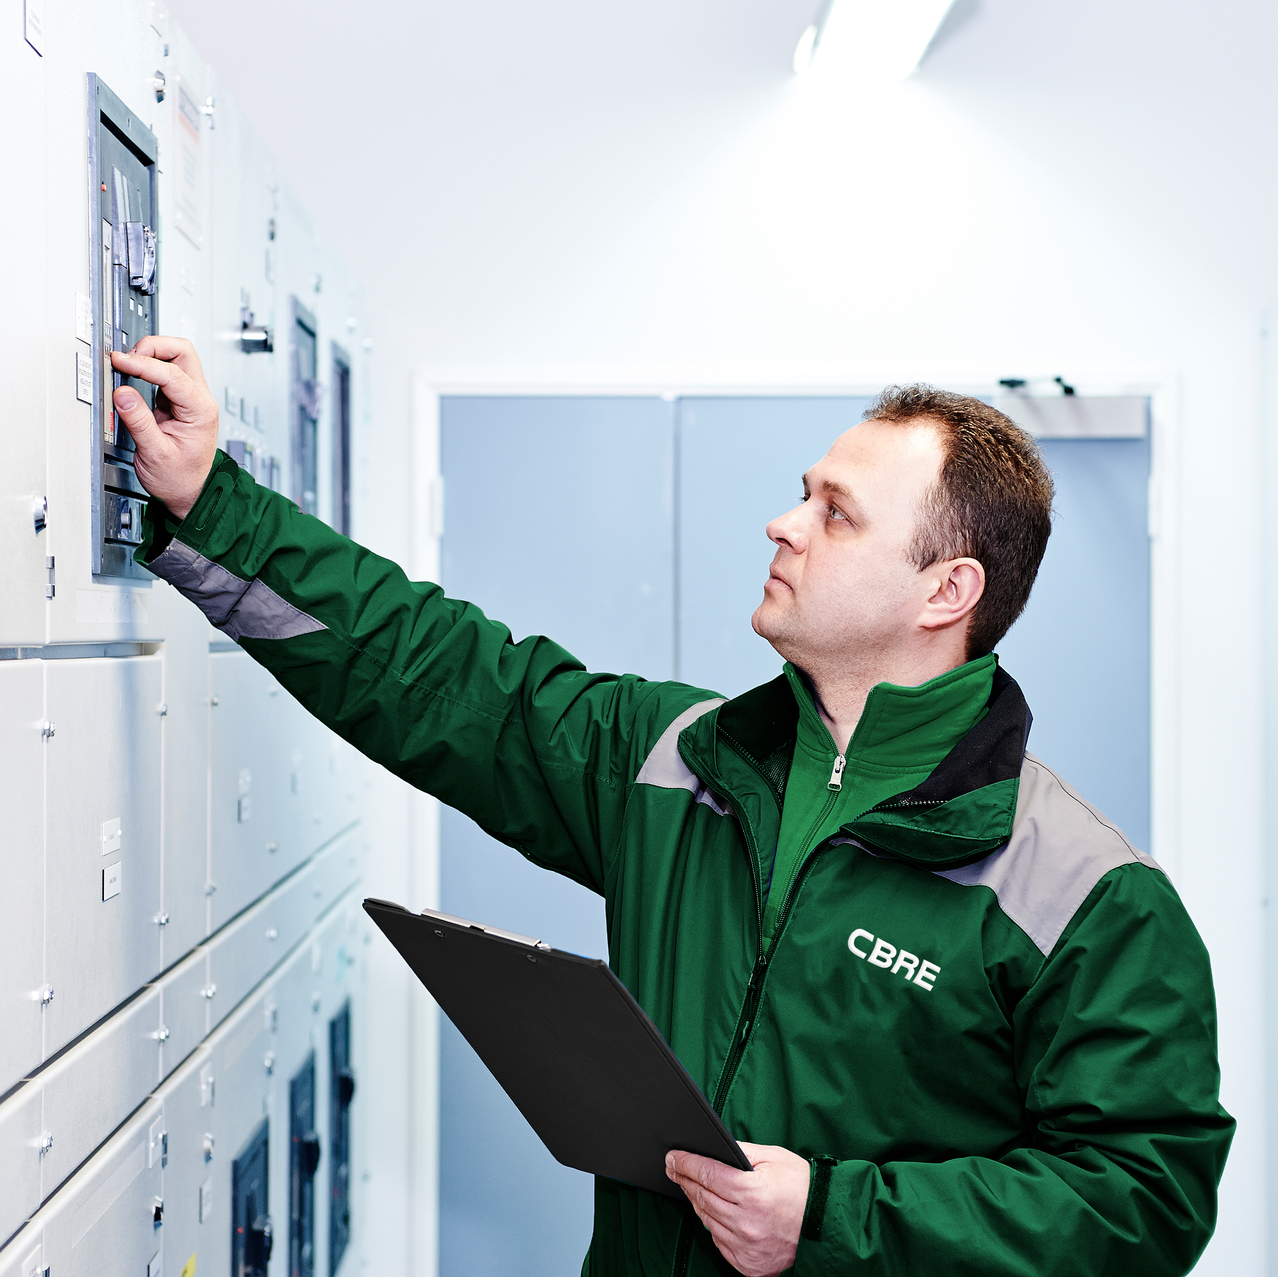 A technician works in a CBRE data center. CBRE recently announced all its data center technicians will earn the Certified Data Centre Technician Professional (CDCTP) certification from CNet Training.